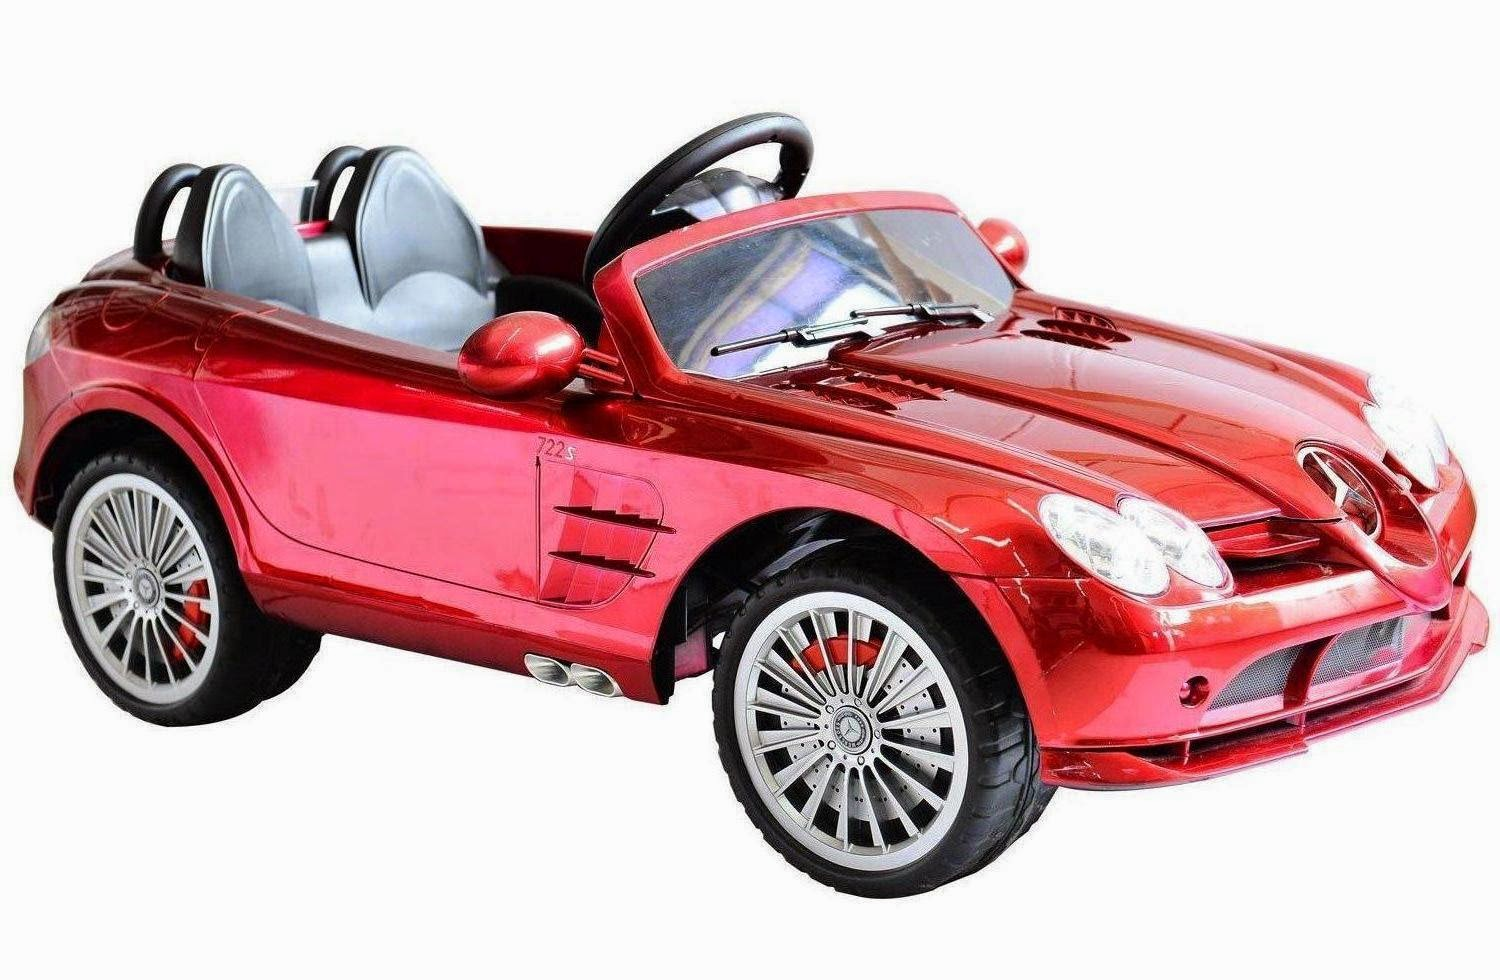 Mercedes benz 722s kids 12v electric ride on toy car w for Mercedes benz toy car ride on